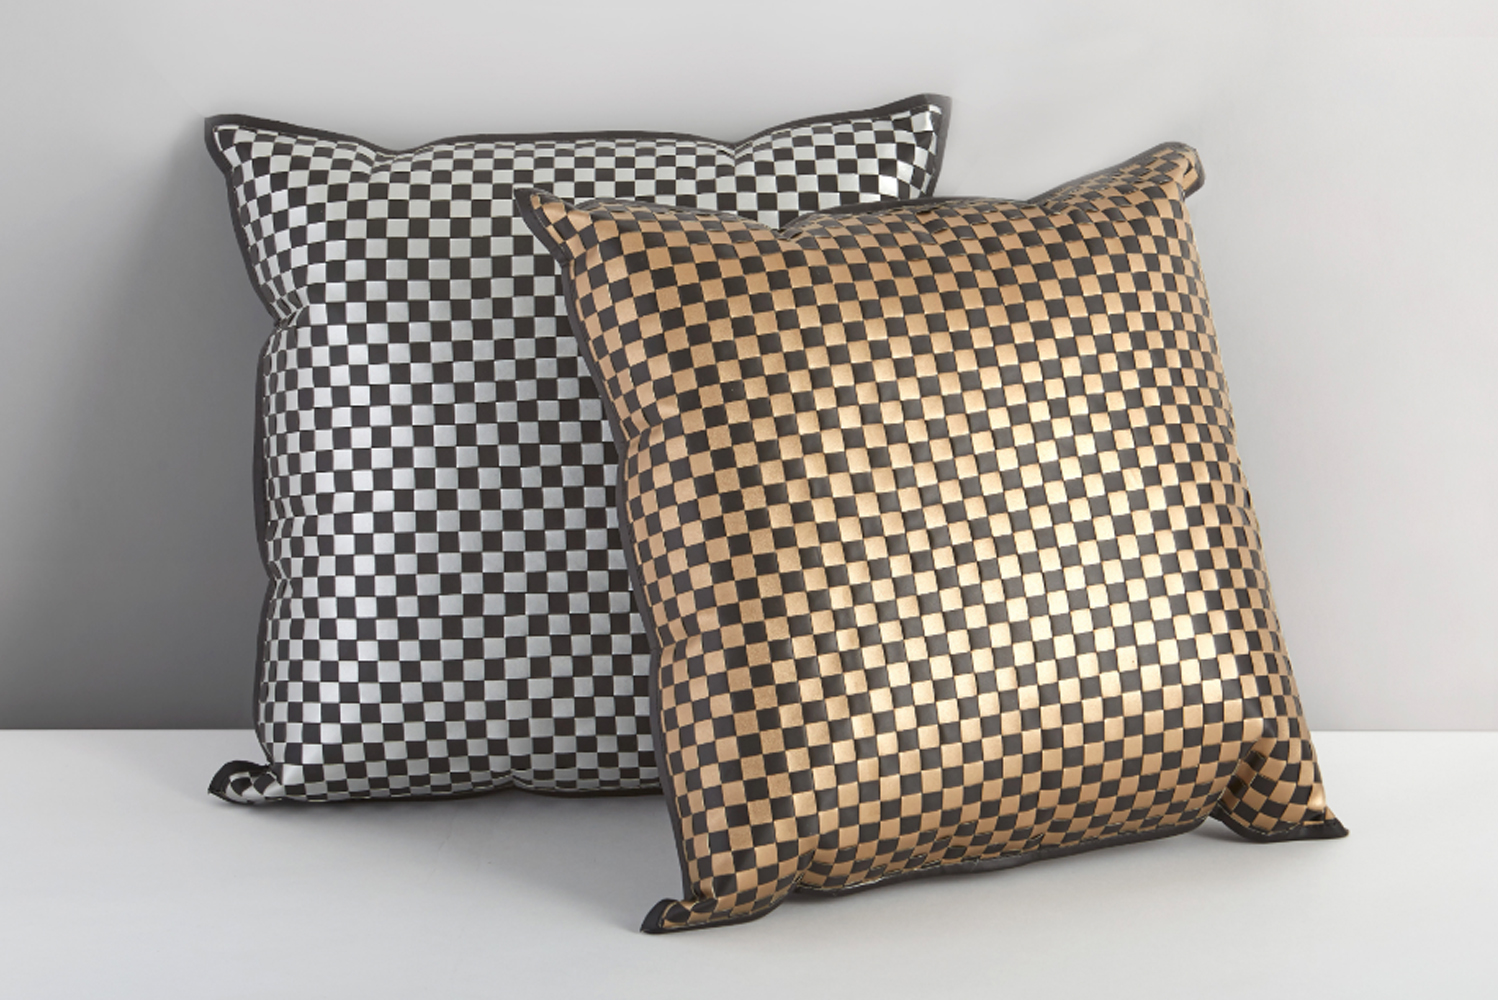 The metallic look of the Slate pillow makes it a standout piece in any guestroom.